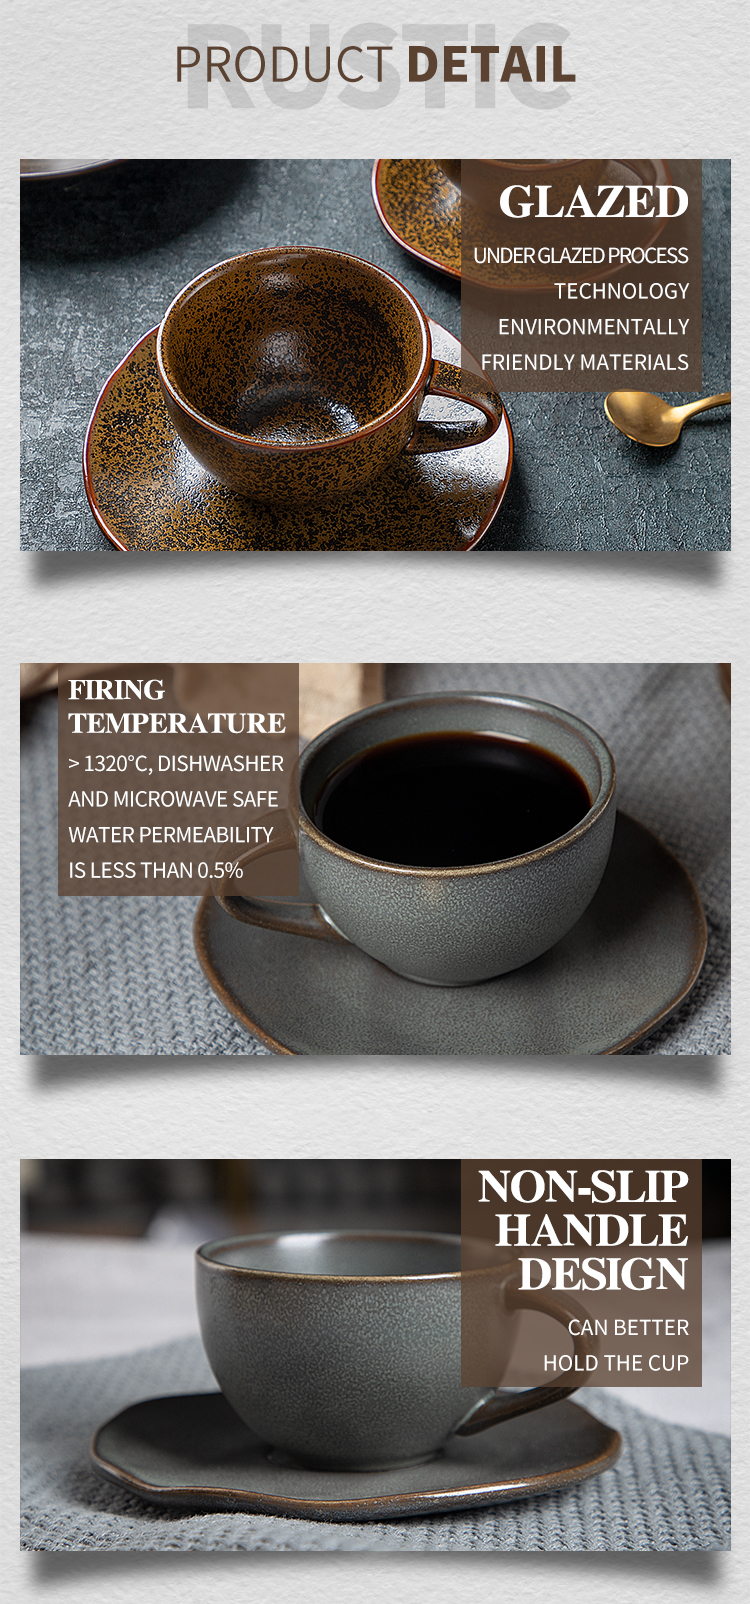 product-2020 New Trend Porcelain Coffee Cup And Saucer, Color Tableware Coffee Cup Hotel, Rustic Din-1